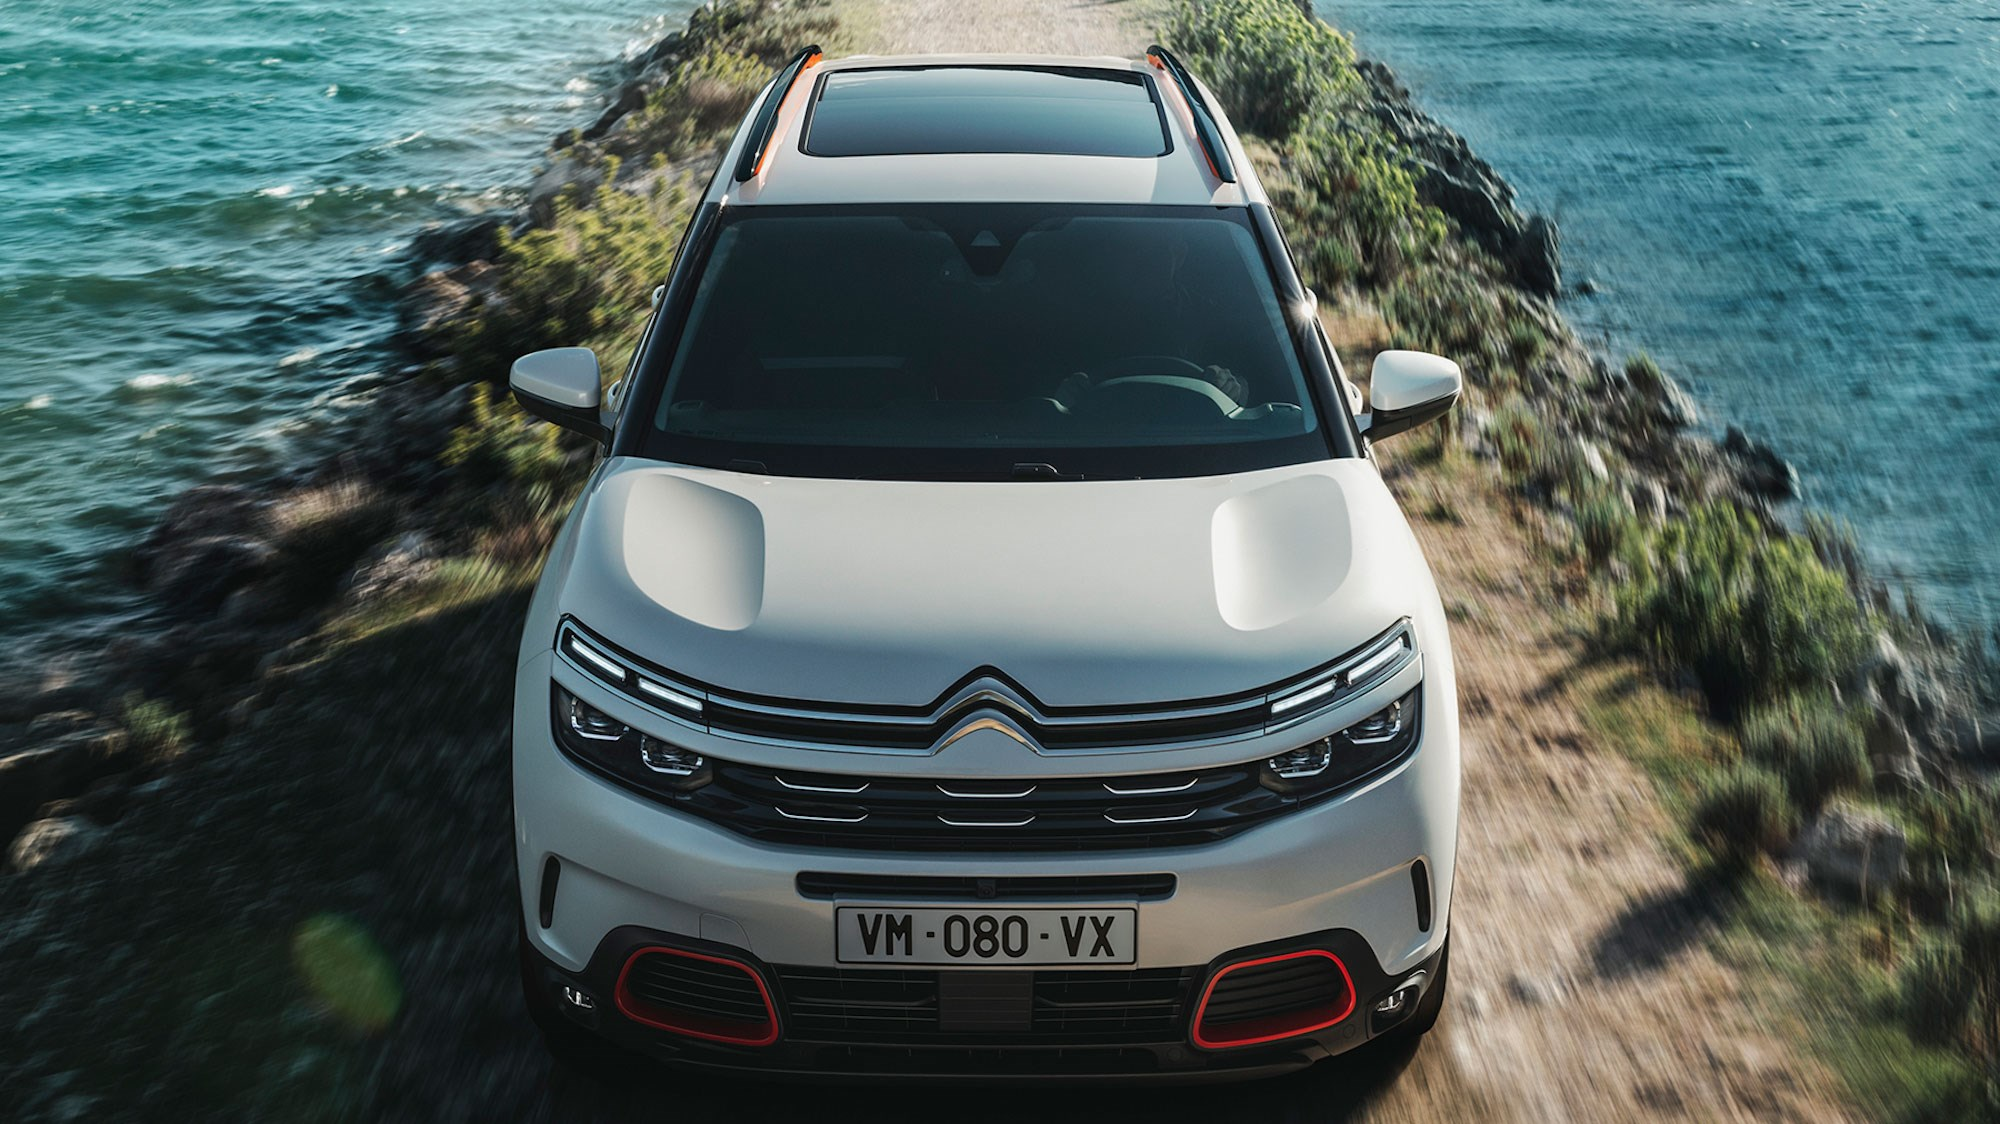 Citroen C5 Aircross Suv 2019 Review Bringing New Comfort To The